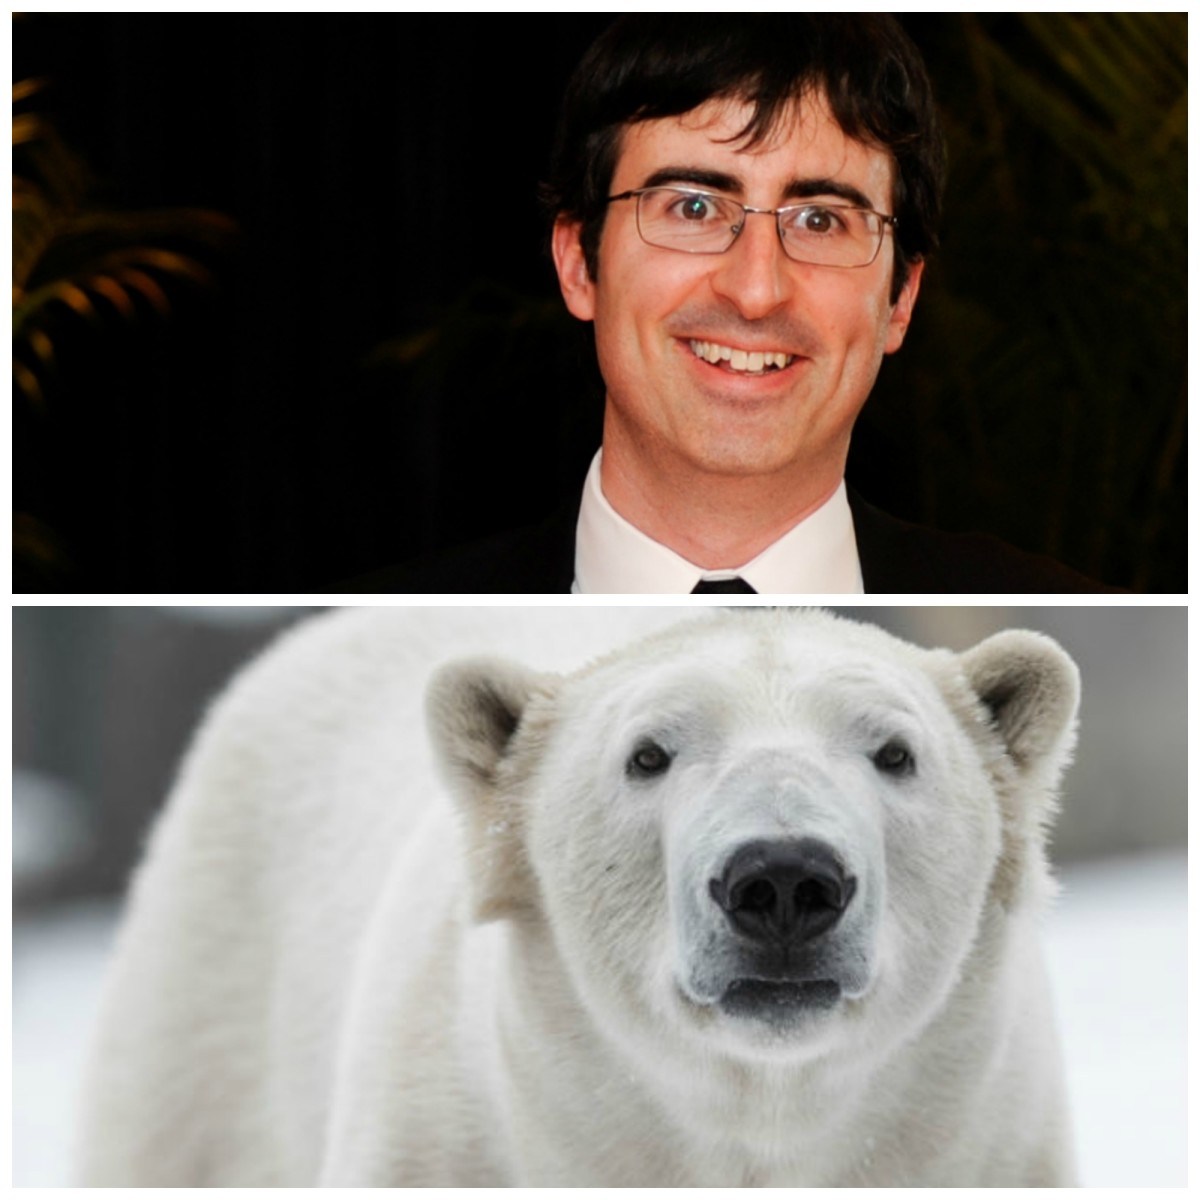 John Oliver's penis report is not going over well with this polar bear. (Photos: Rena Schild/Nagel Photography/Shutterstock/Pacific Standard)